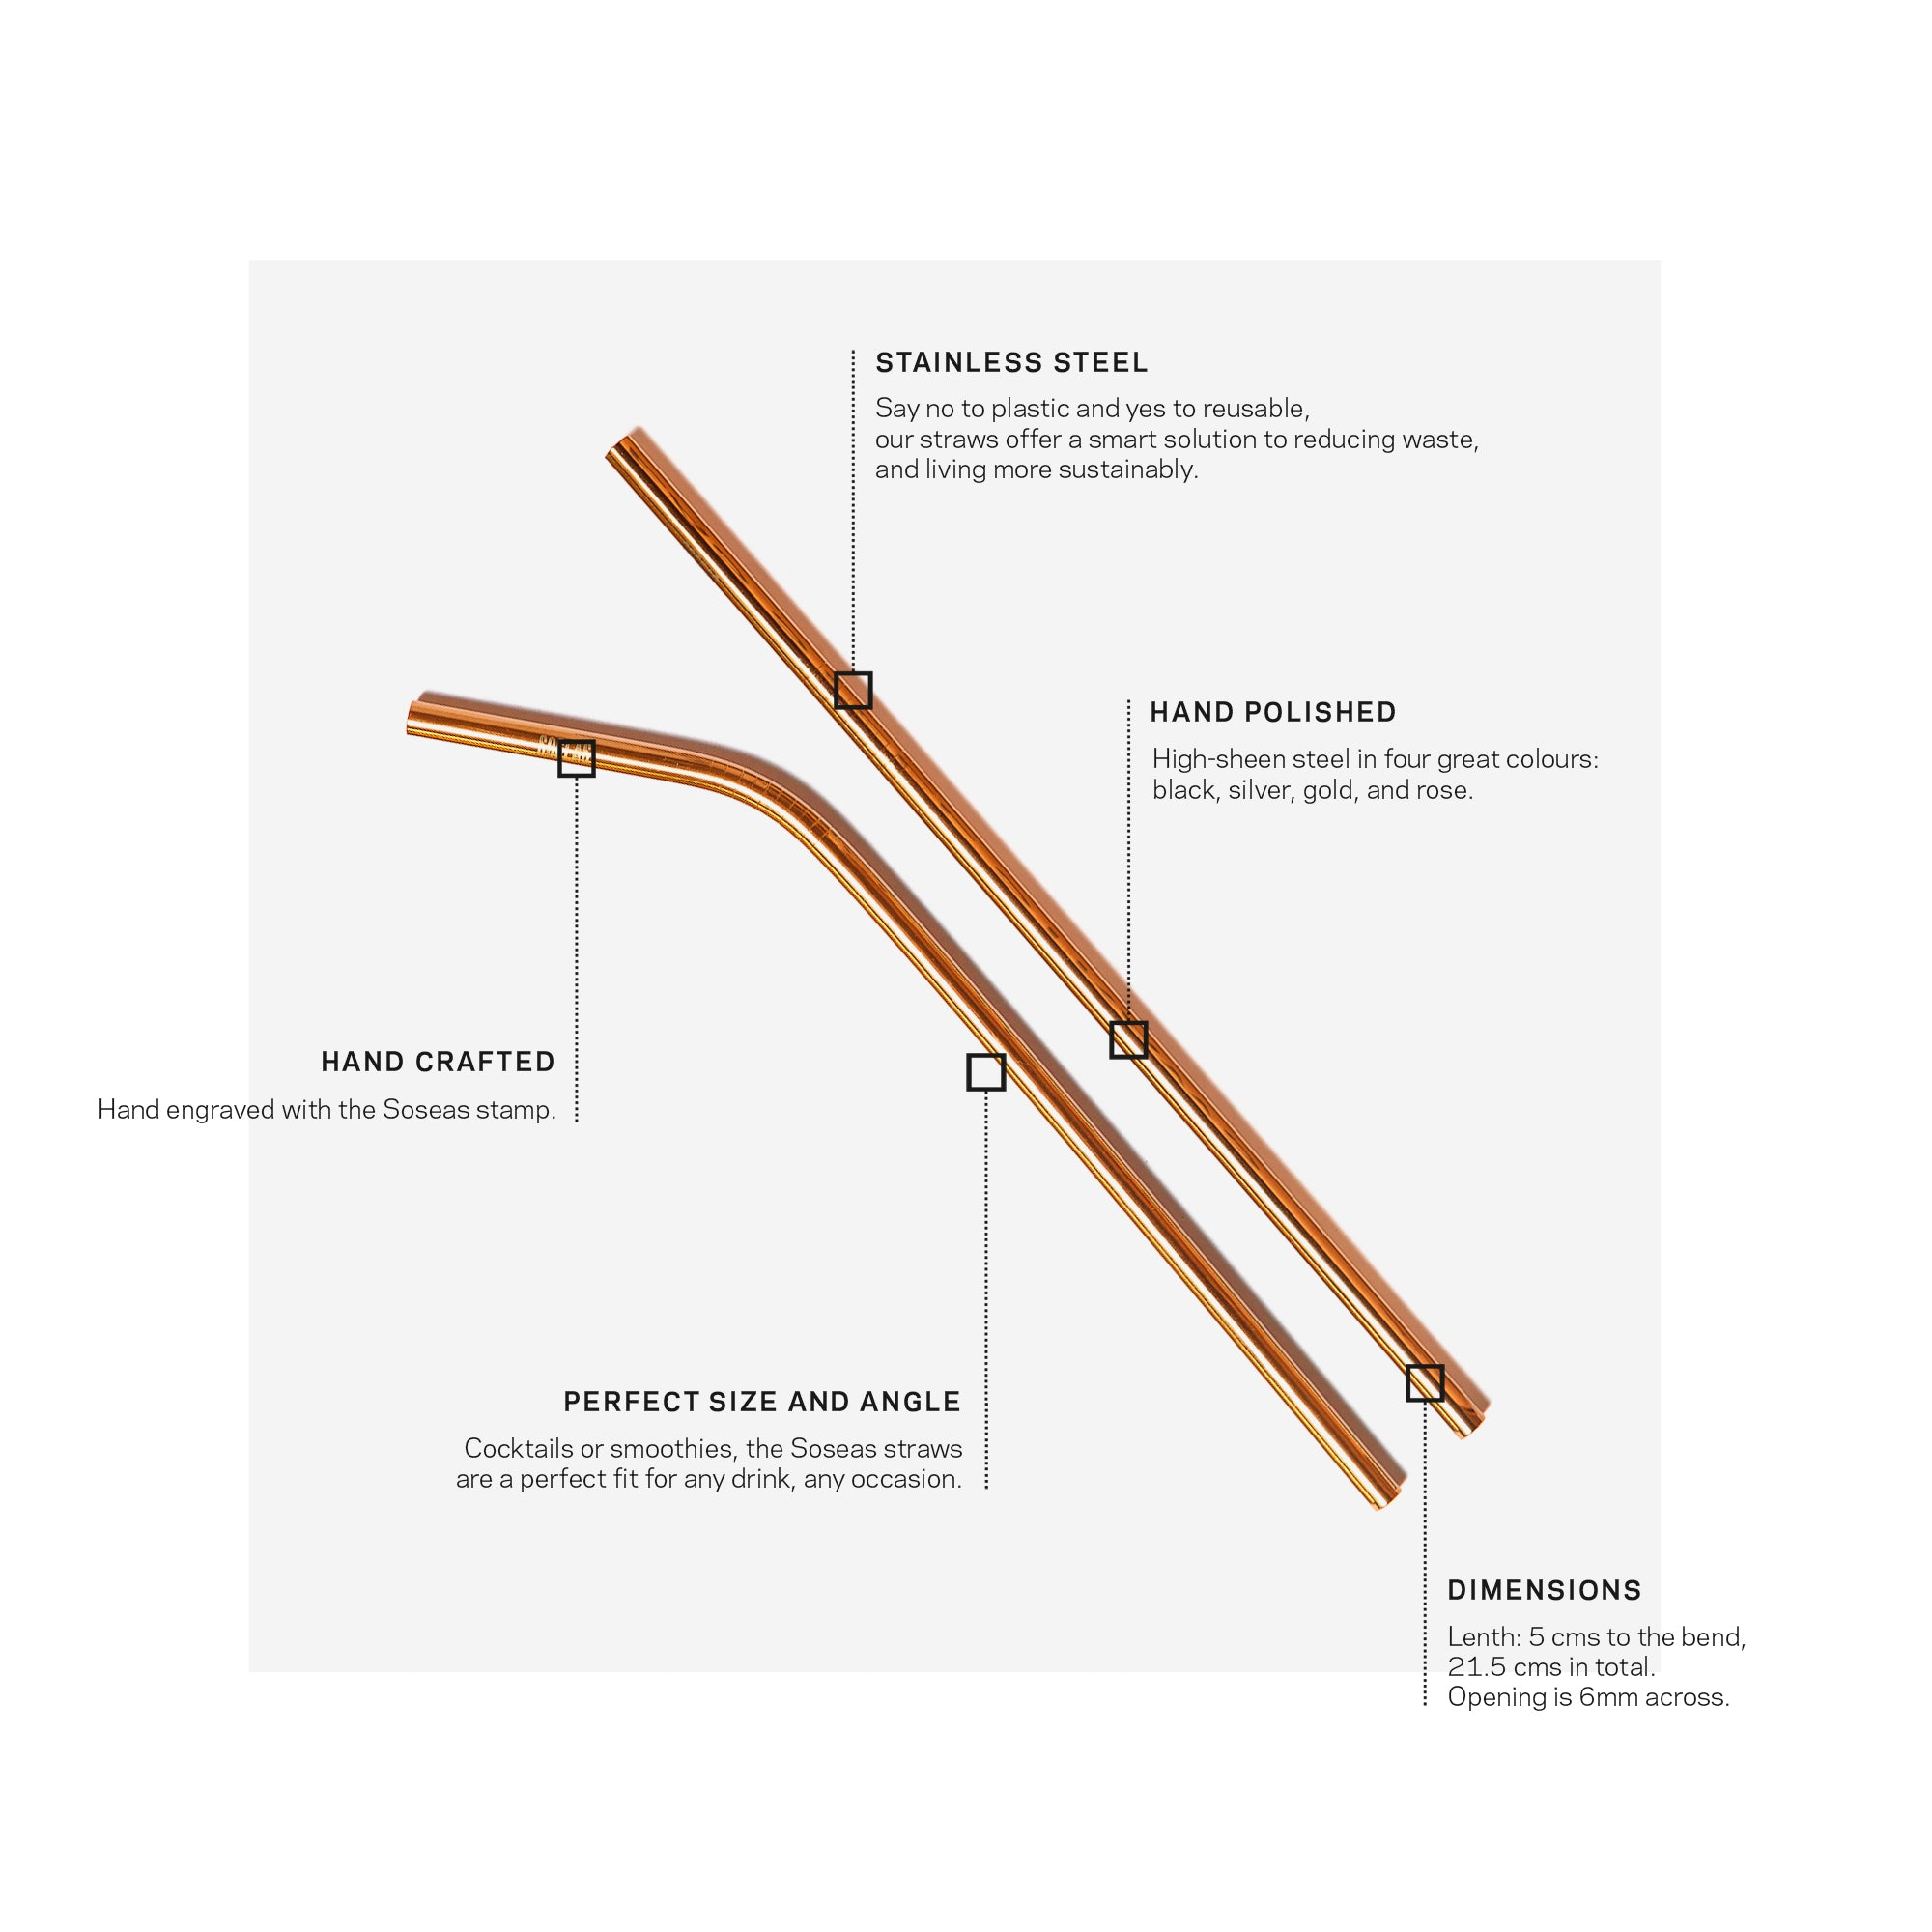 Reusable Stainless Steel Straws Infographic